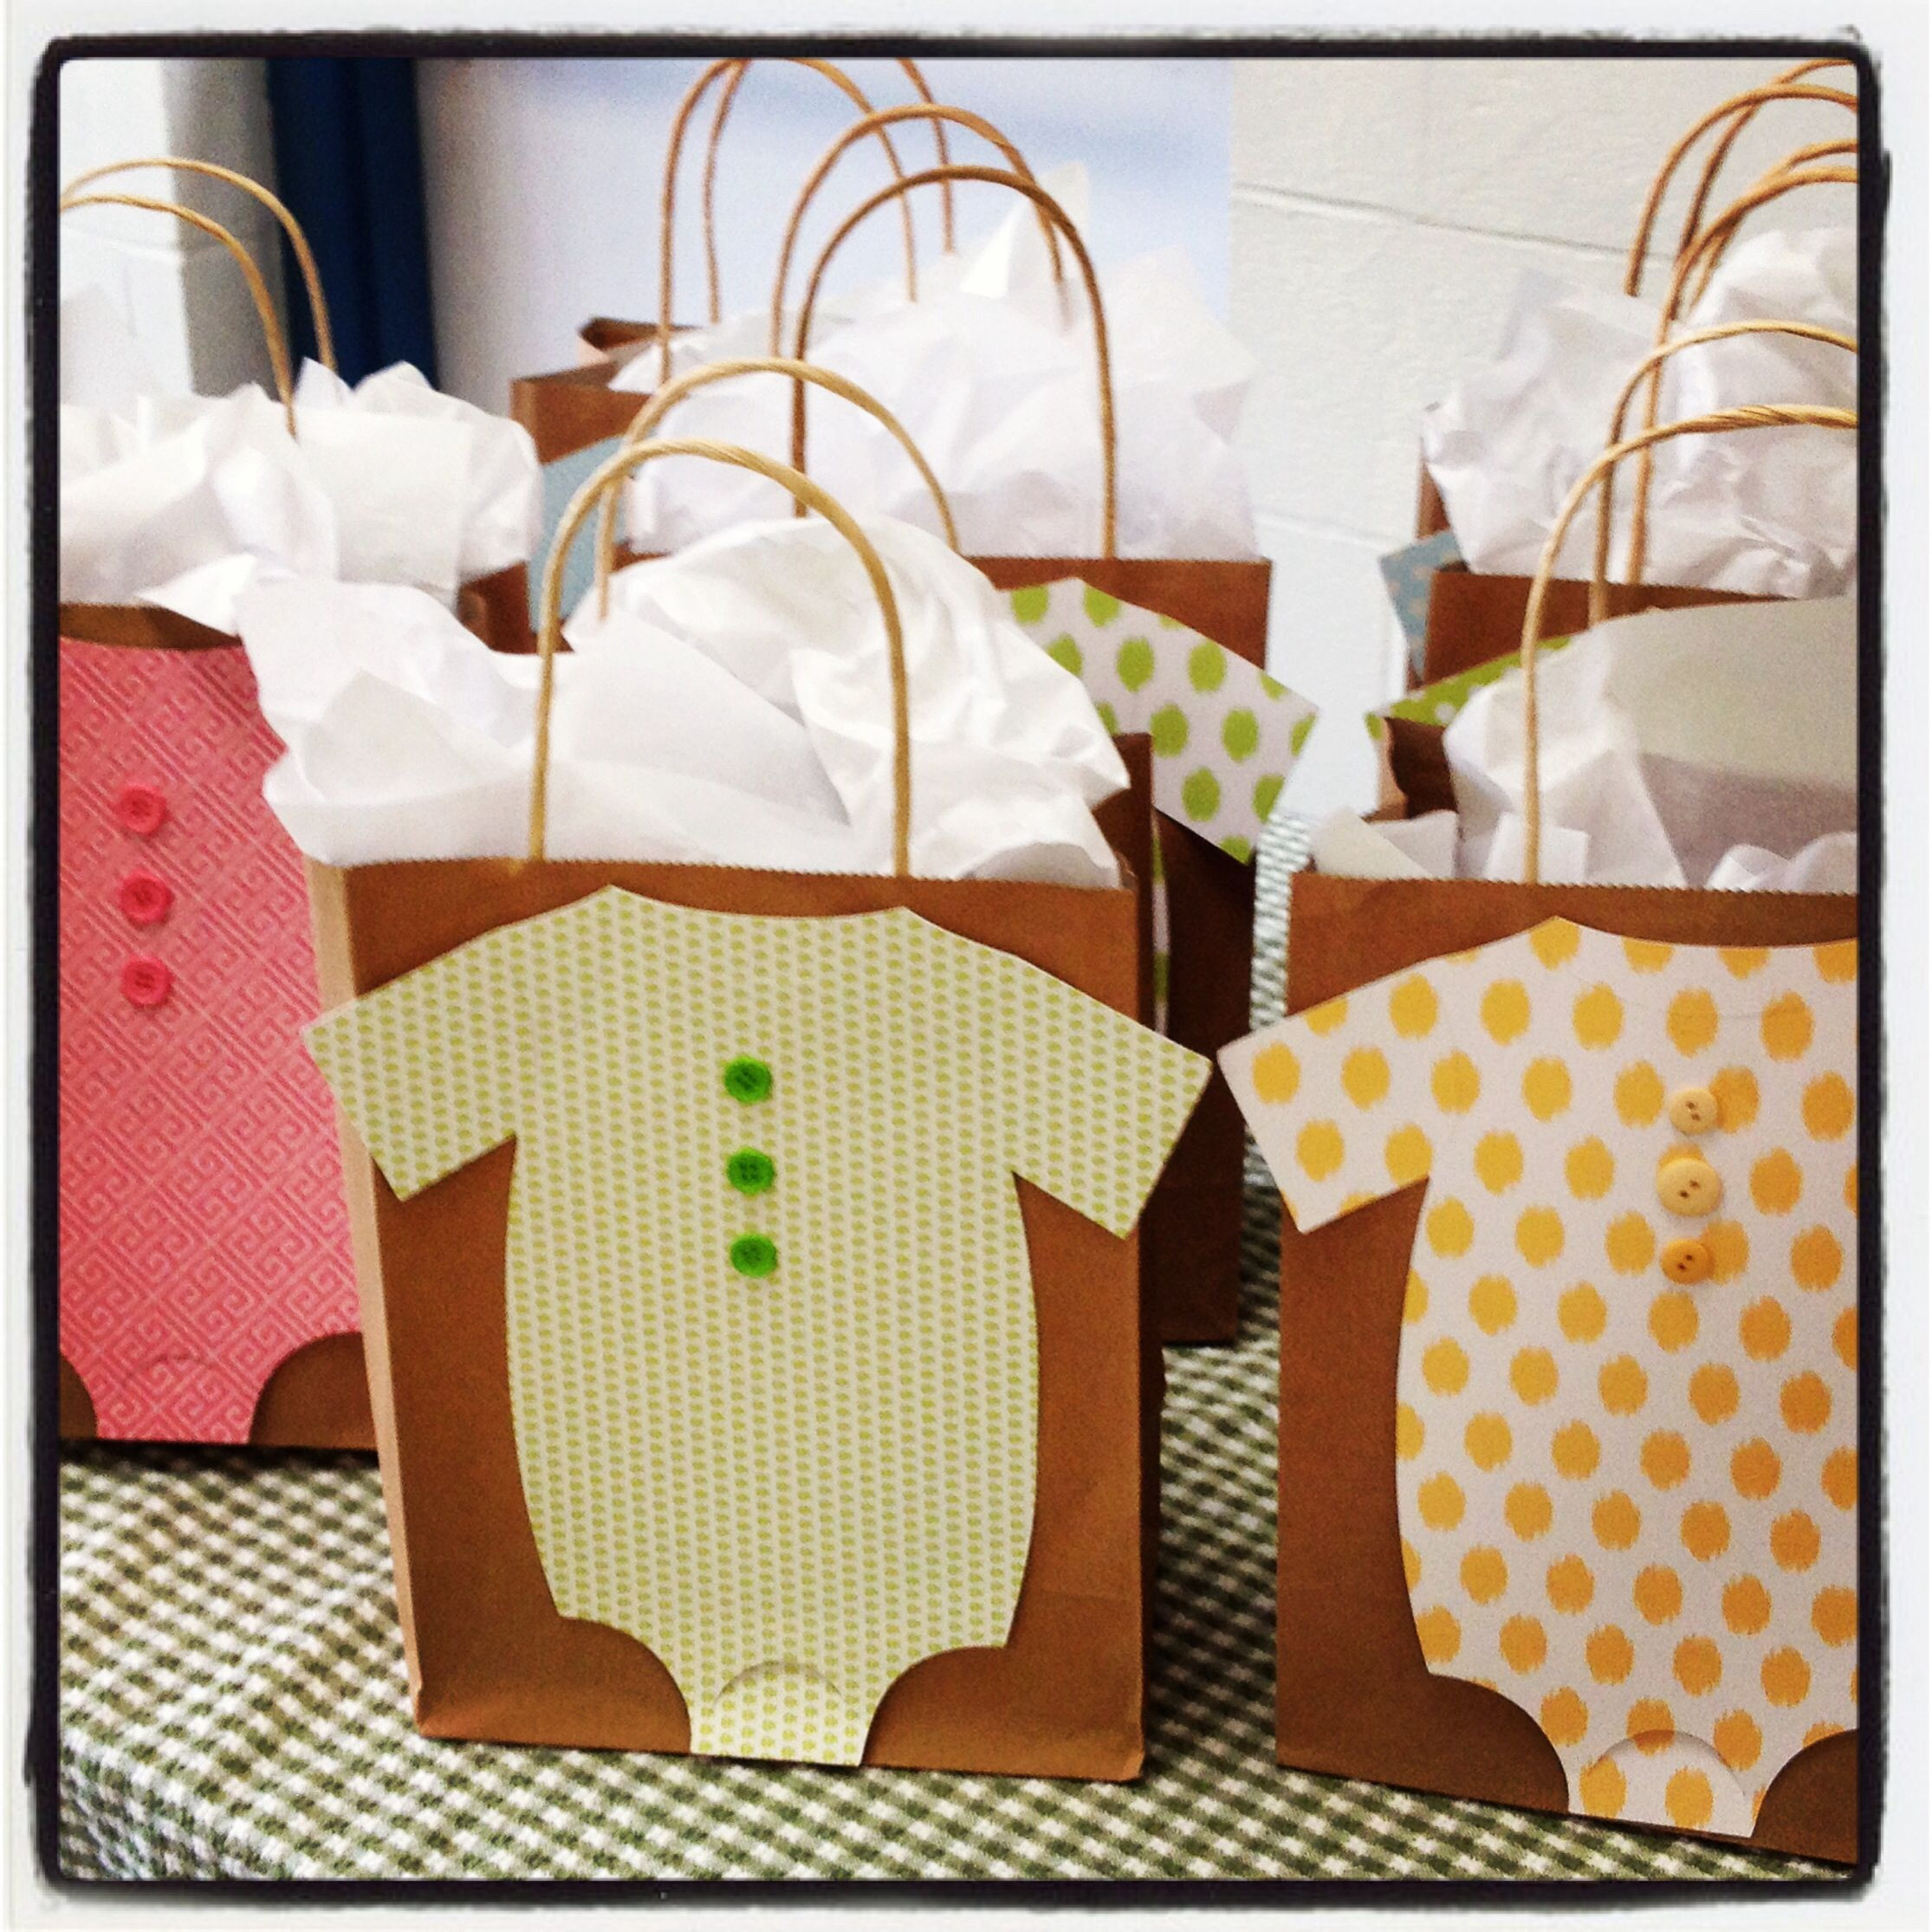 Best ideas about Baby Shower Gift Bag Ideas For Guests . Save or Pin Baby Shower Prize Bag Babyshower Ideas Now.